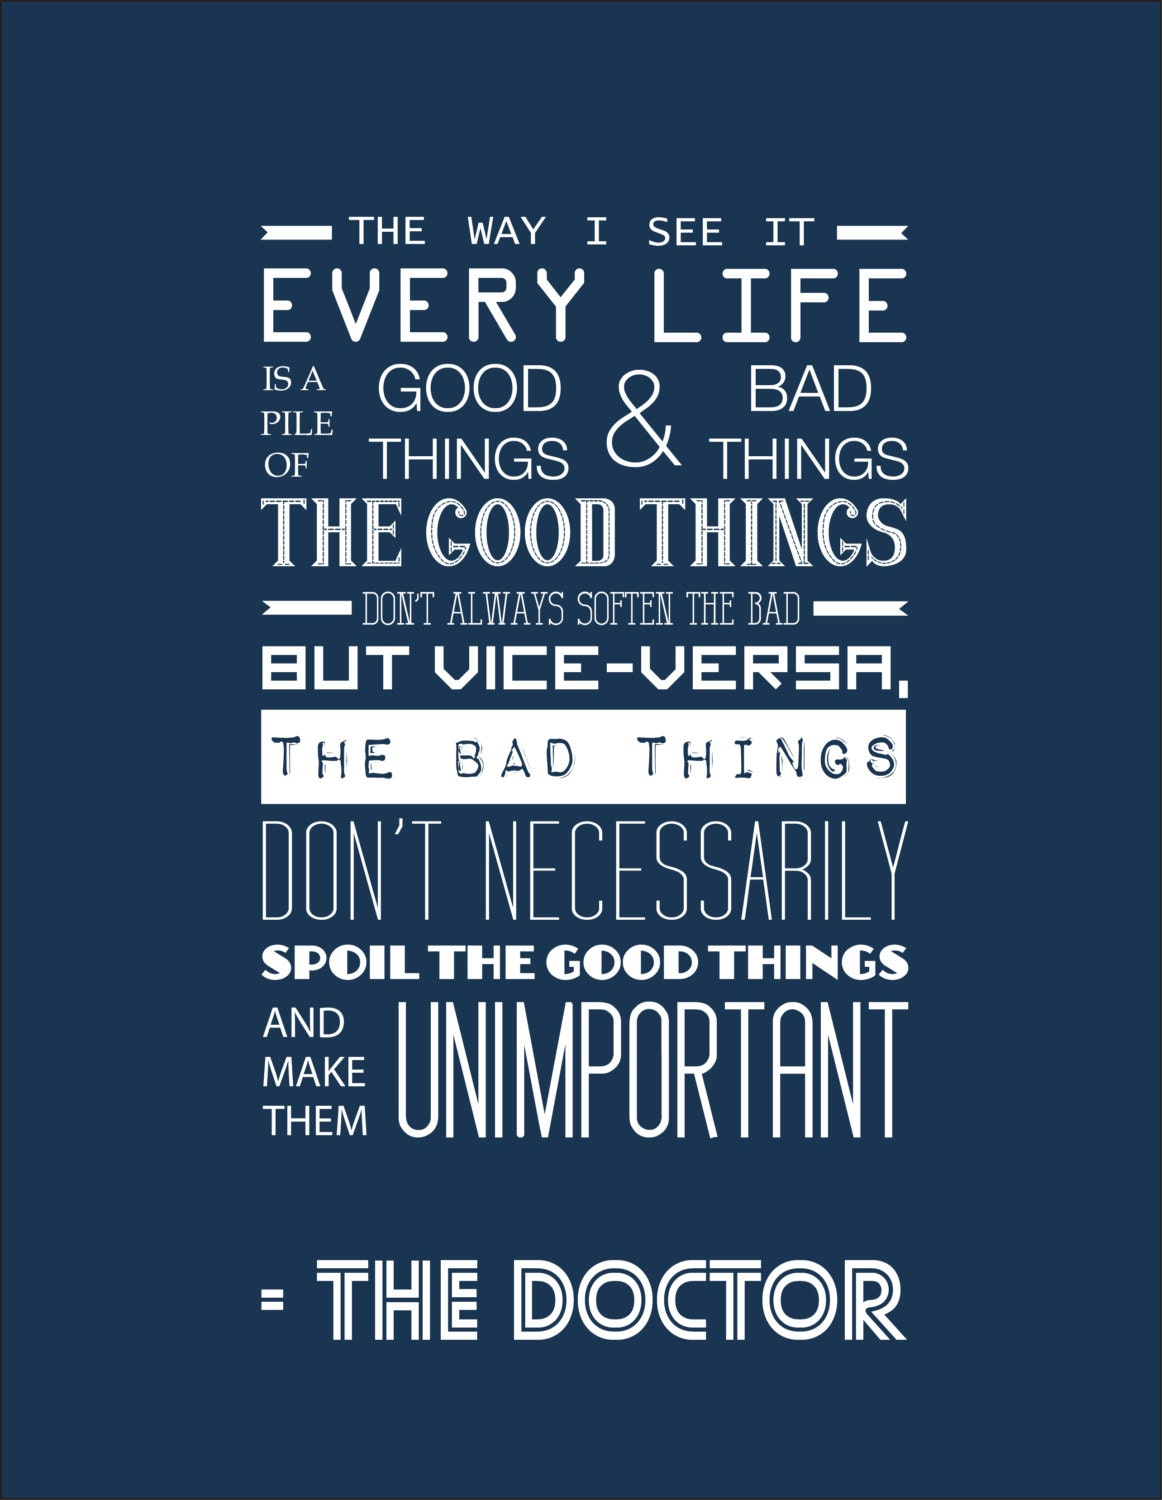 Doctor Who 11th Doctor Quotes. QuotesGram